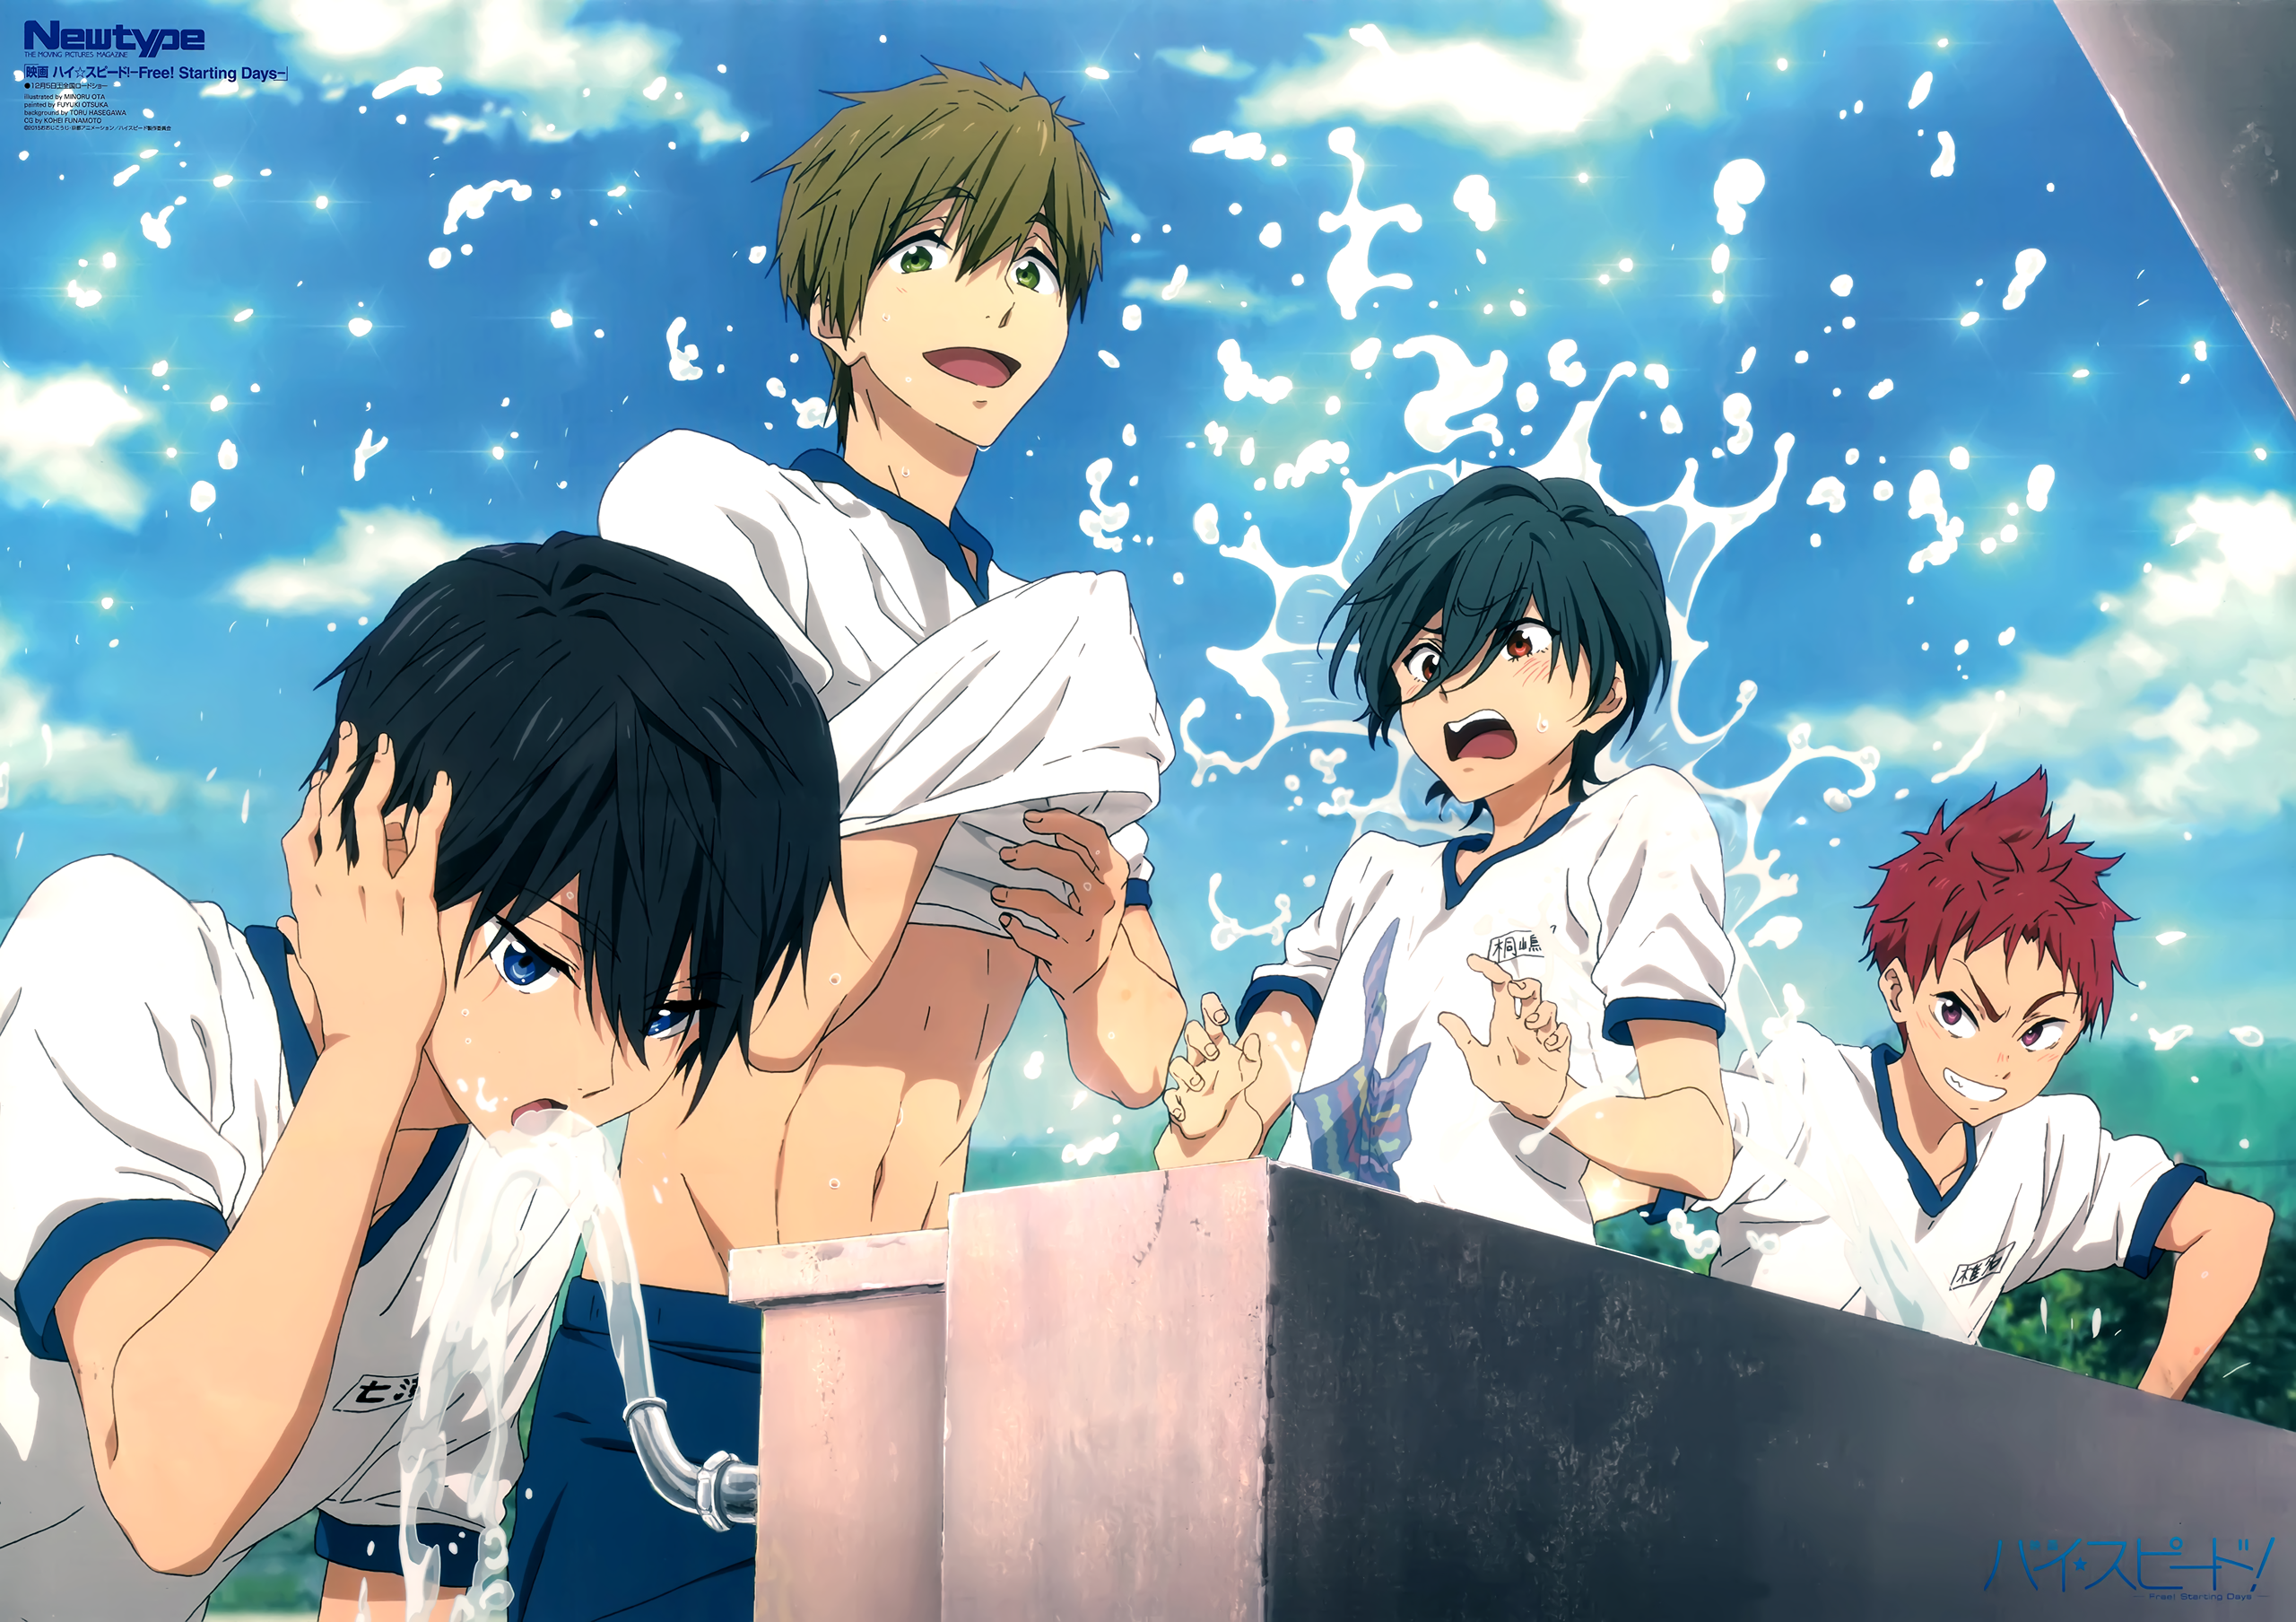 Free Computer Wallpapers Desktop Backgrounds 2560x1808 Id 721557 Free Anime Anime Free Iwatobi